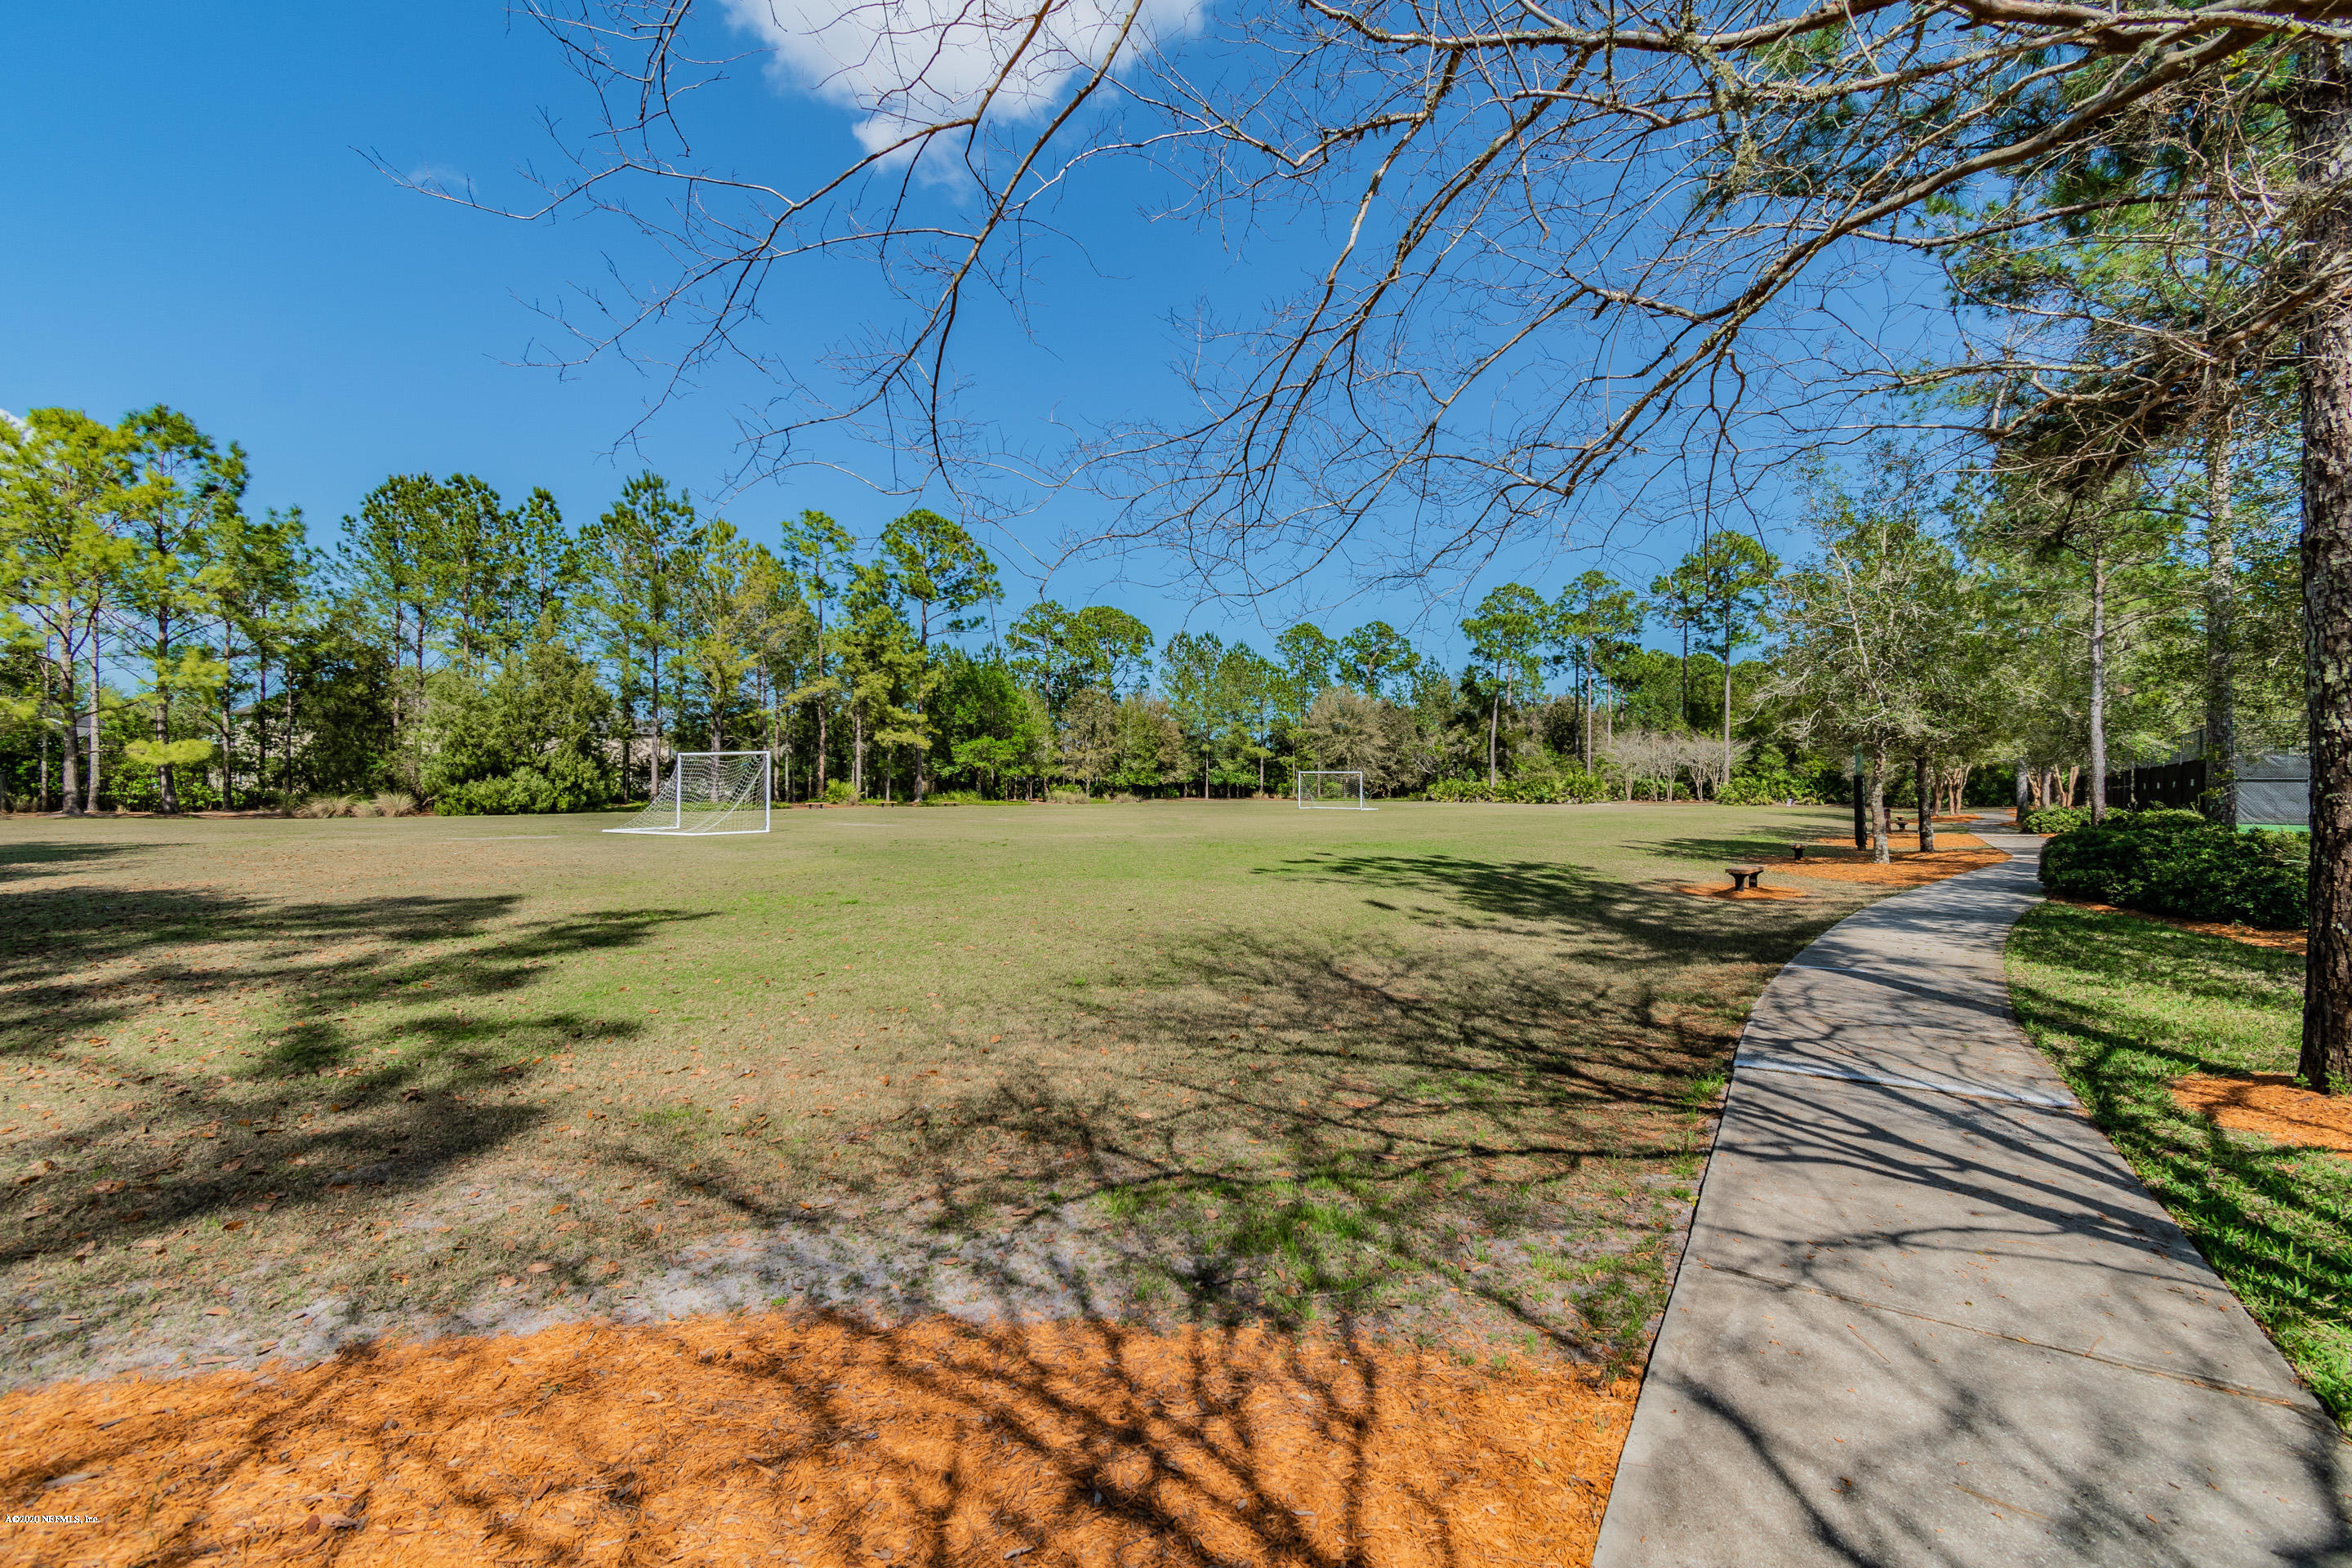 390 ALLAPATTAH, ST AUGUSTINE, FLORIDA 32092, 6 Bedrooms Bedrooms, ,3 BathroomsBathrooms,Residential,For sale,ALLAPATTAH,1045018